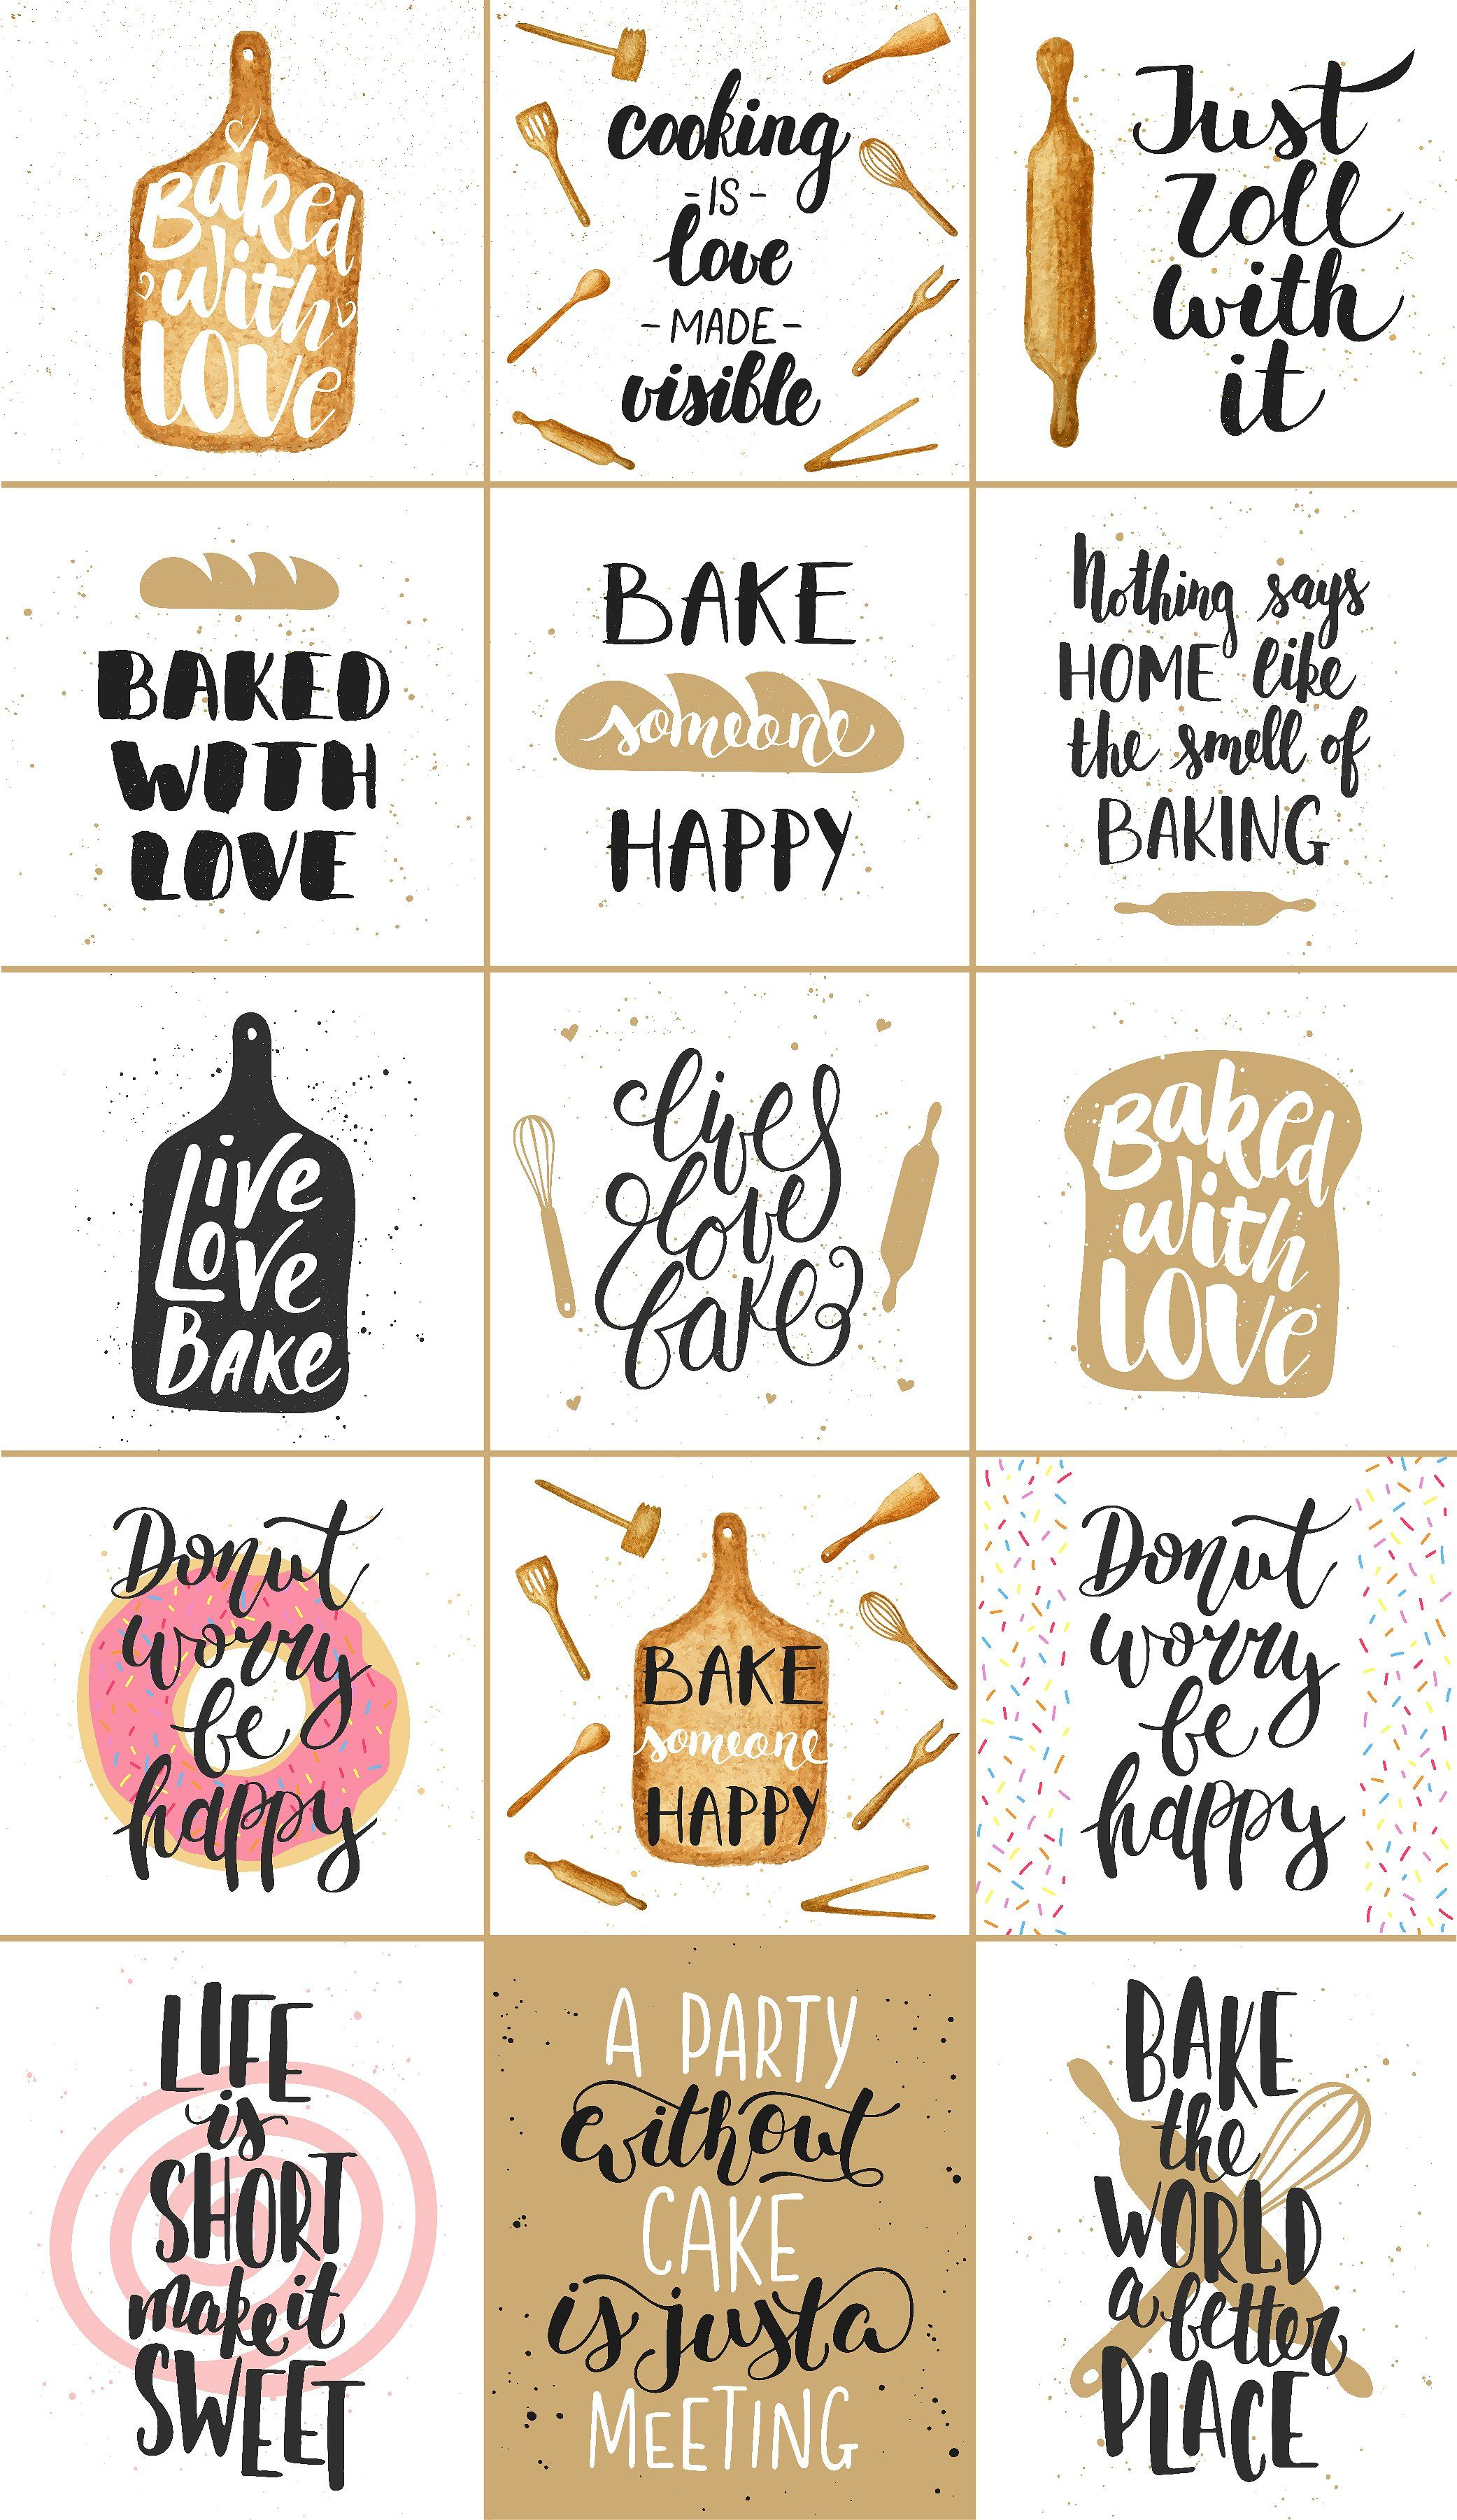 Bakery Quotes 1